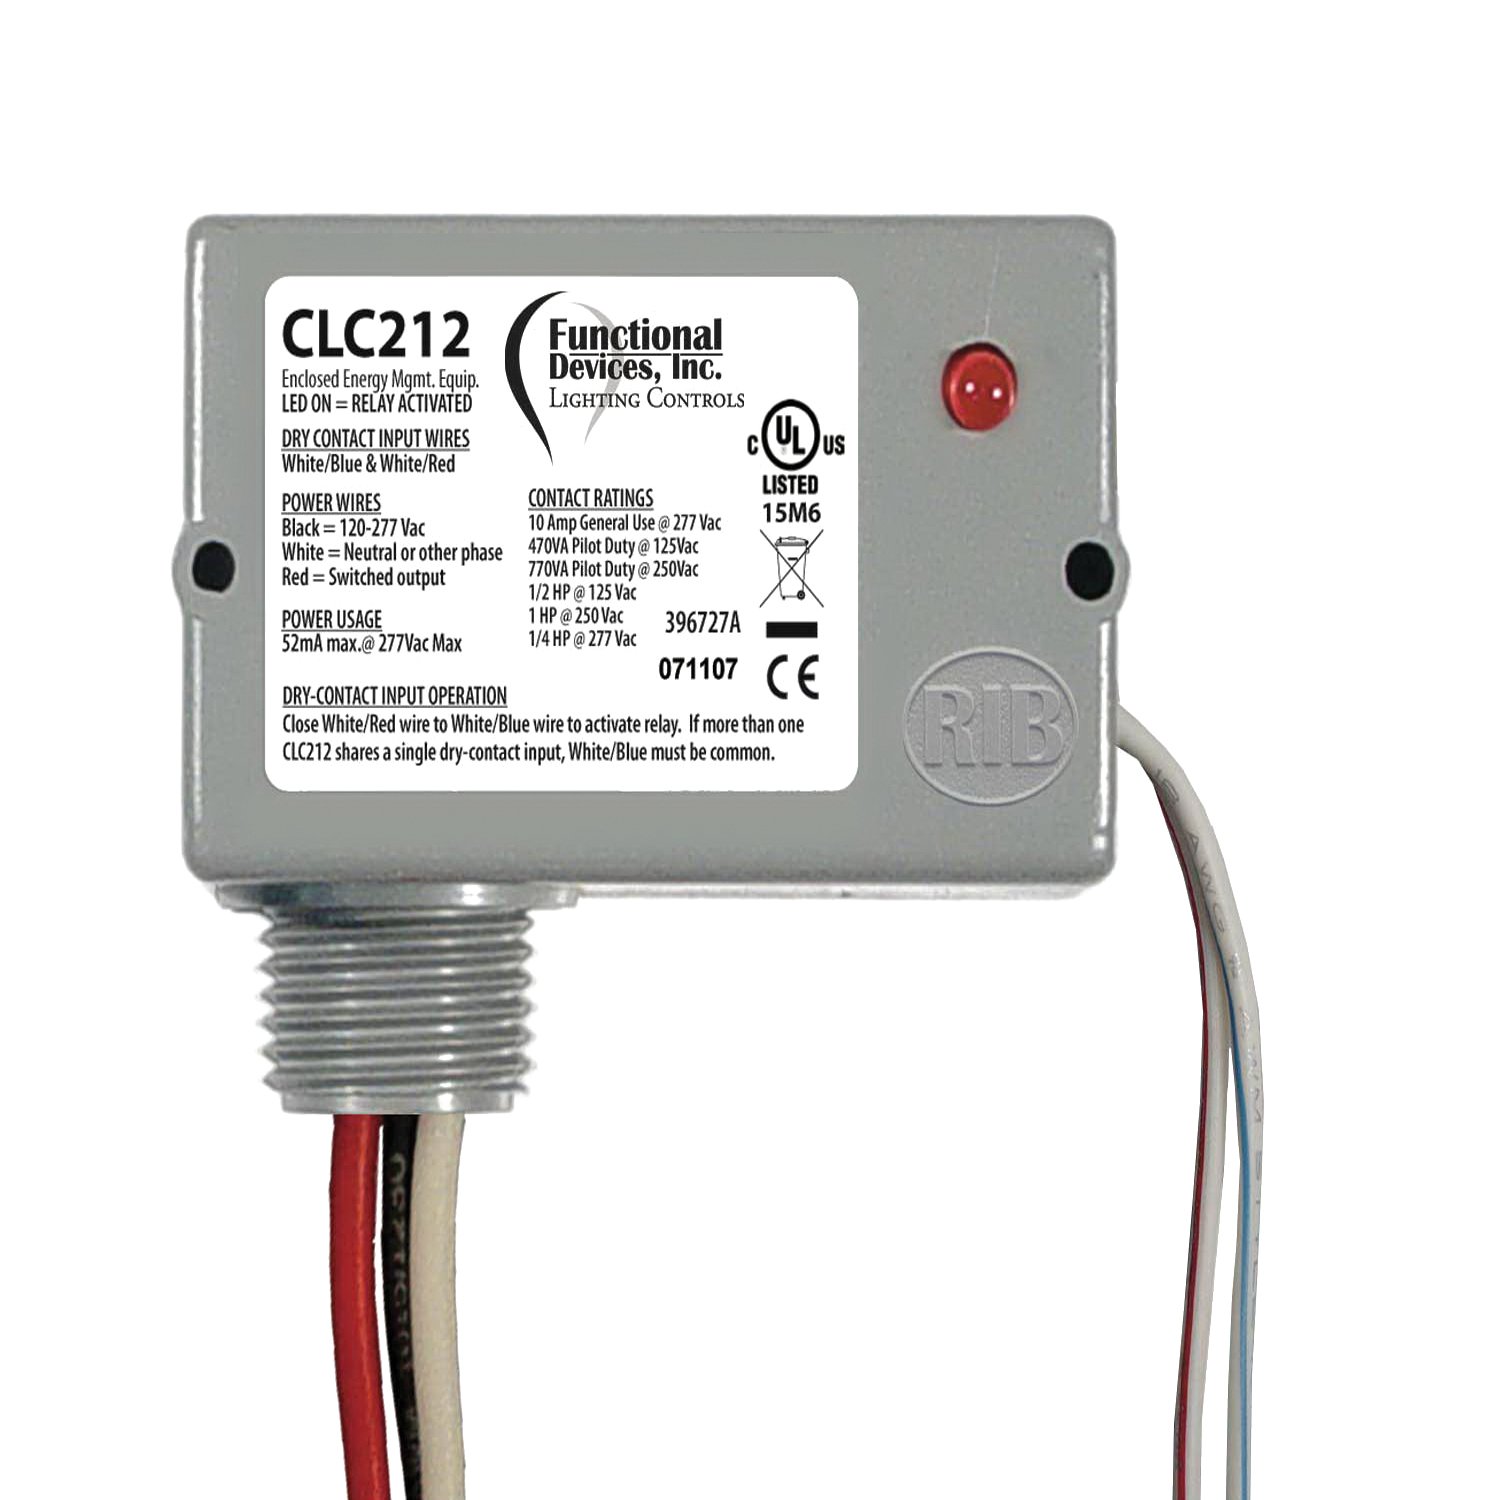 CLC212 - Functional Devices Closet Light Switch, Enclosed Relay, 10A SPST-N/O, 120-277 Vac